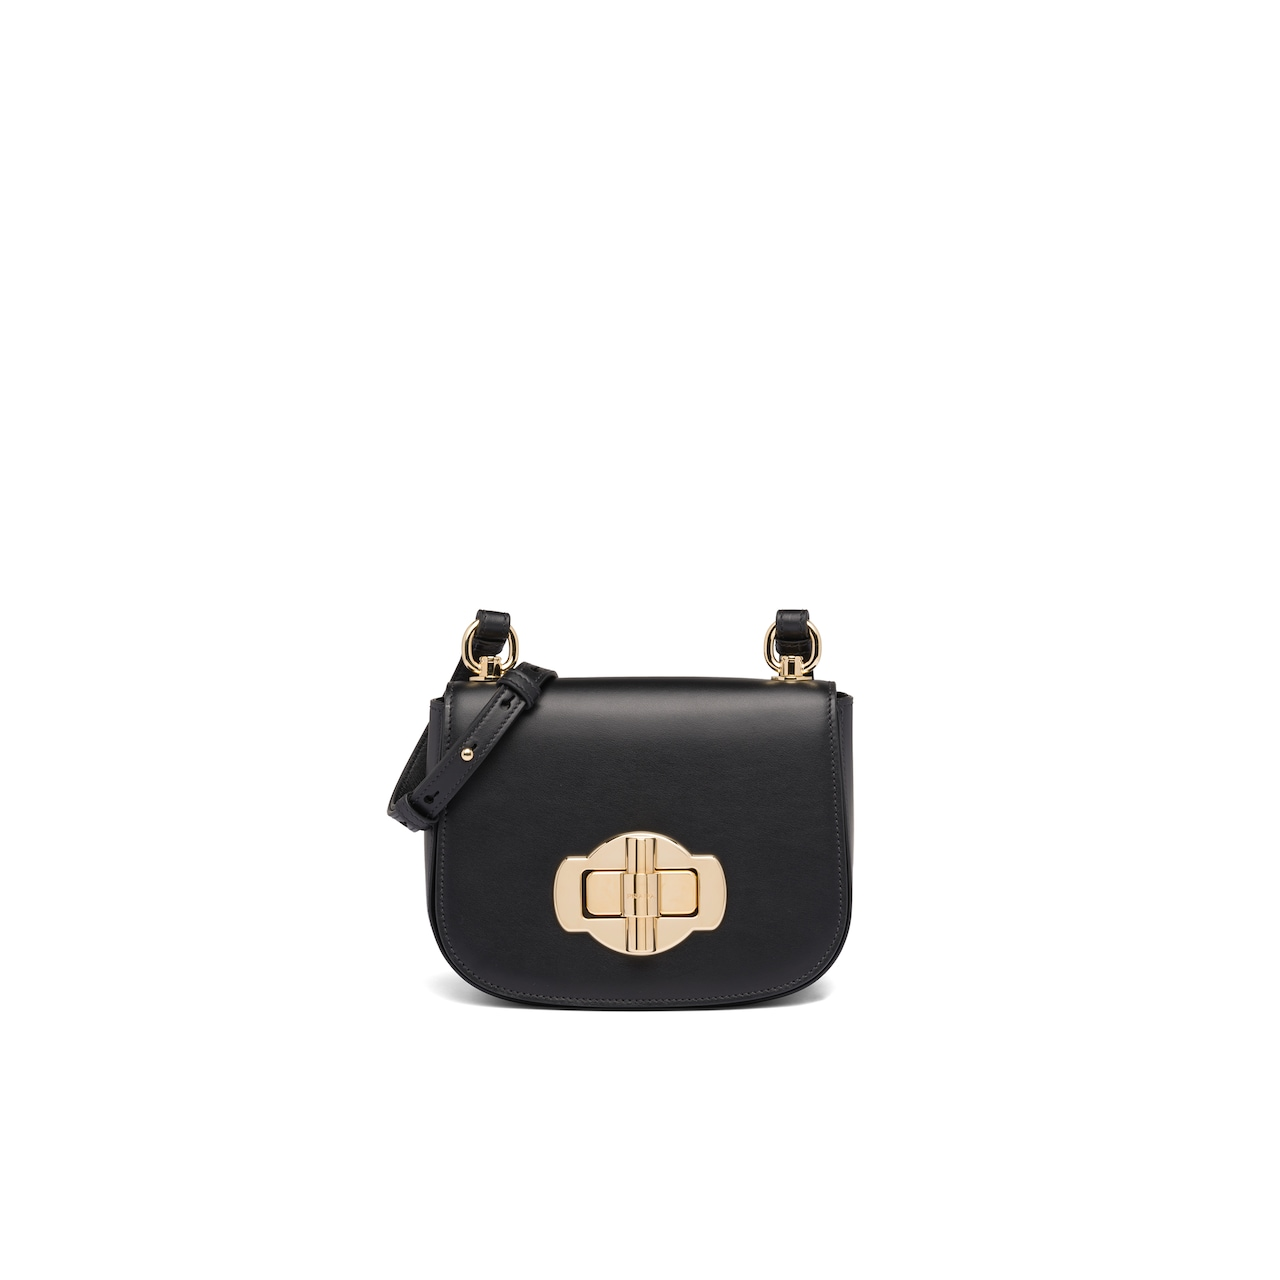 Prada Leather shoulder bag 1